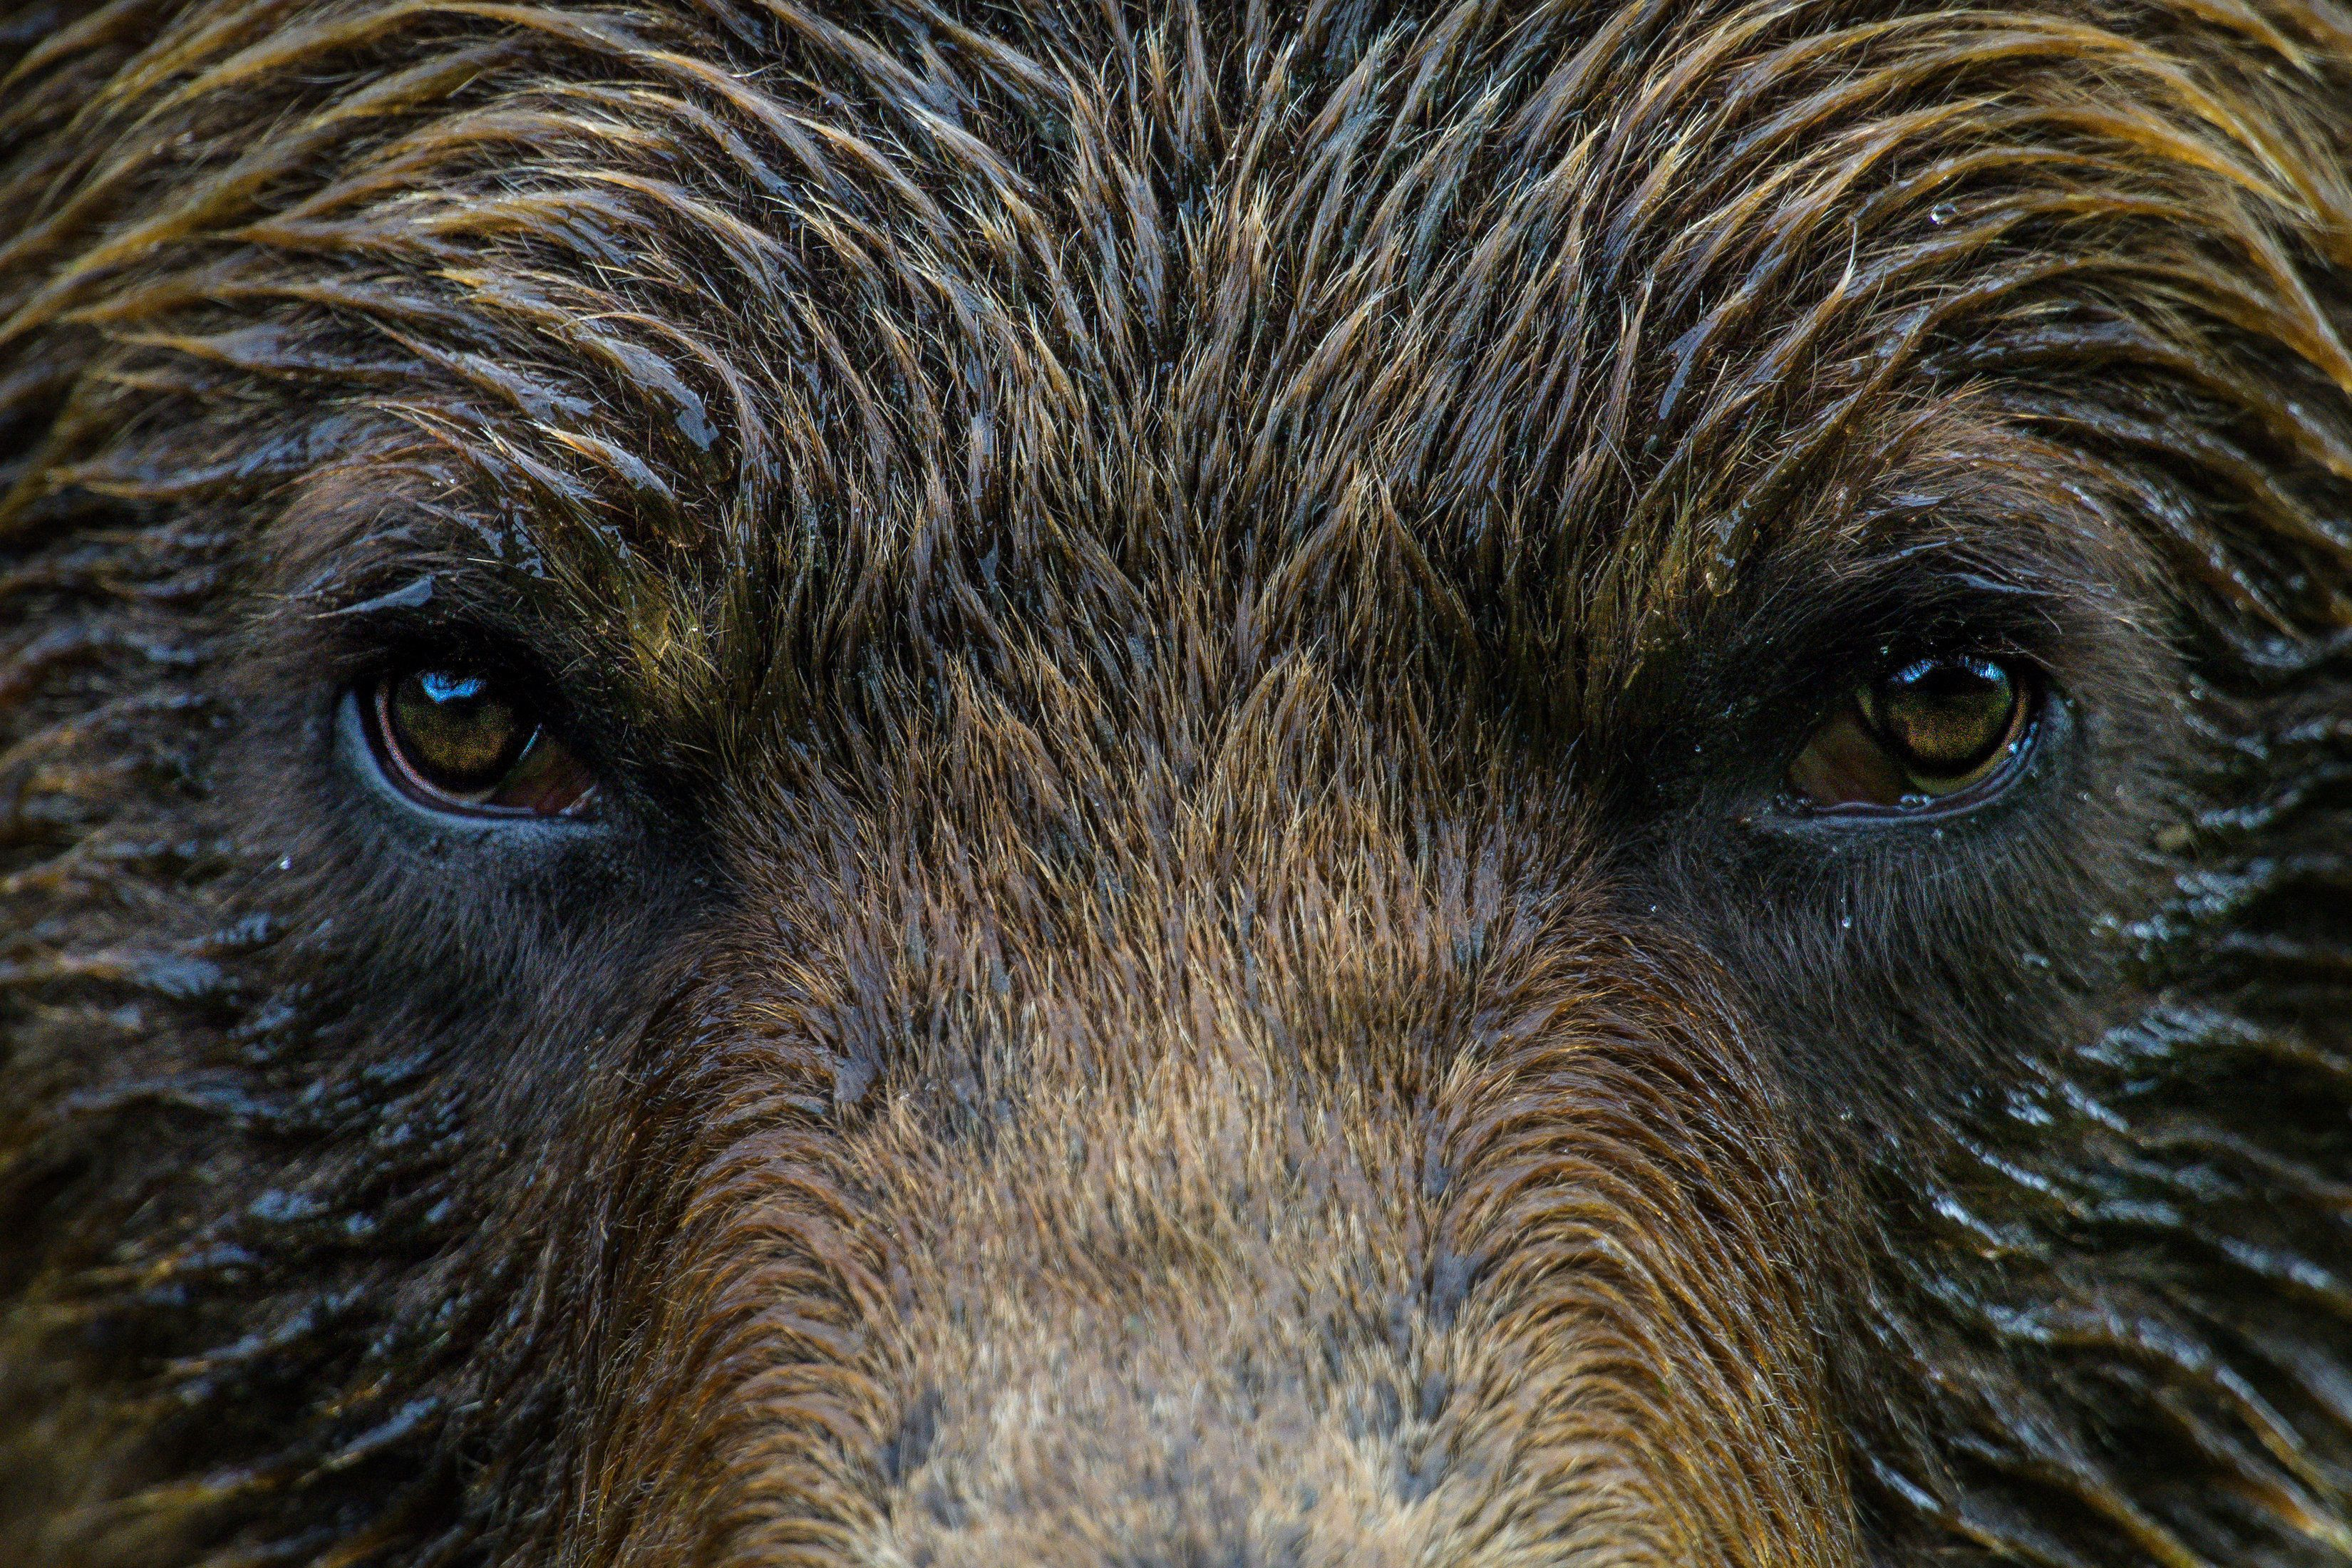 A grizzly bear in Canada's first and only grizzly bear sanctuary, the Khutzeymateen Provincial Park, a haven for the ic